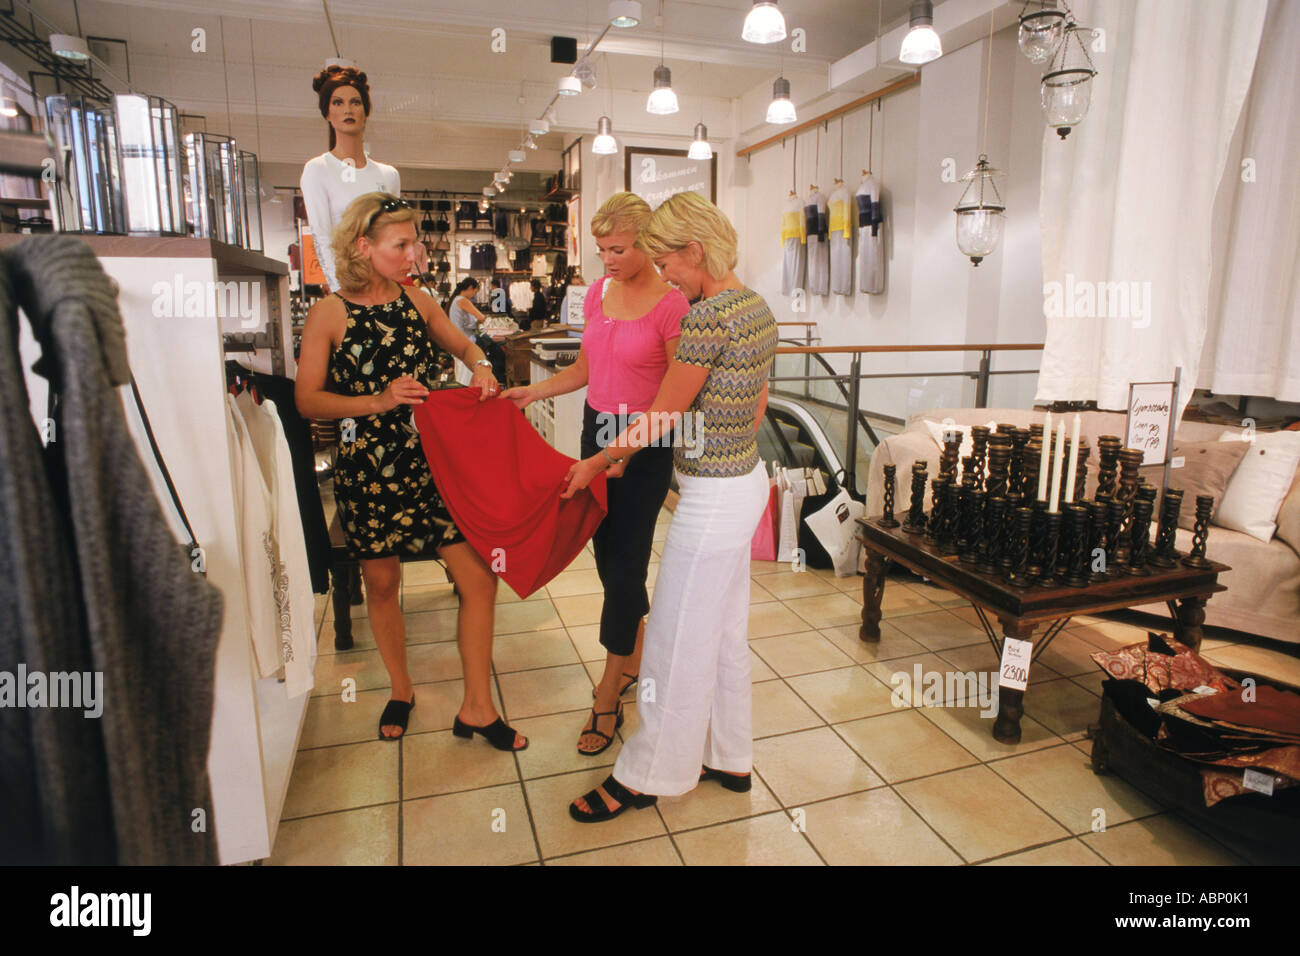 8e2ea0985c6 Three Swedish women shopping together at women's department store in  Stockholm